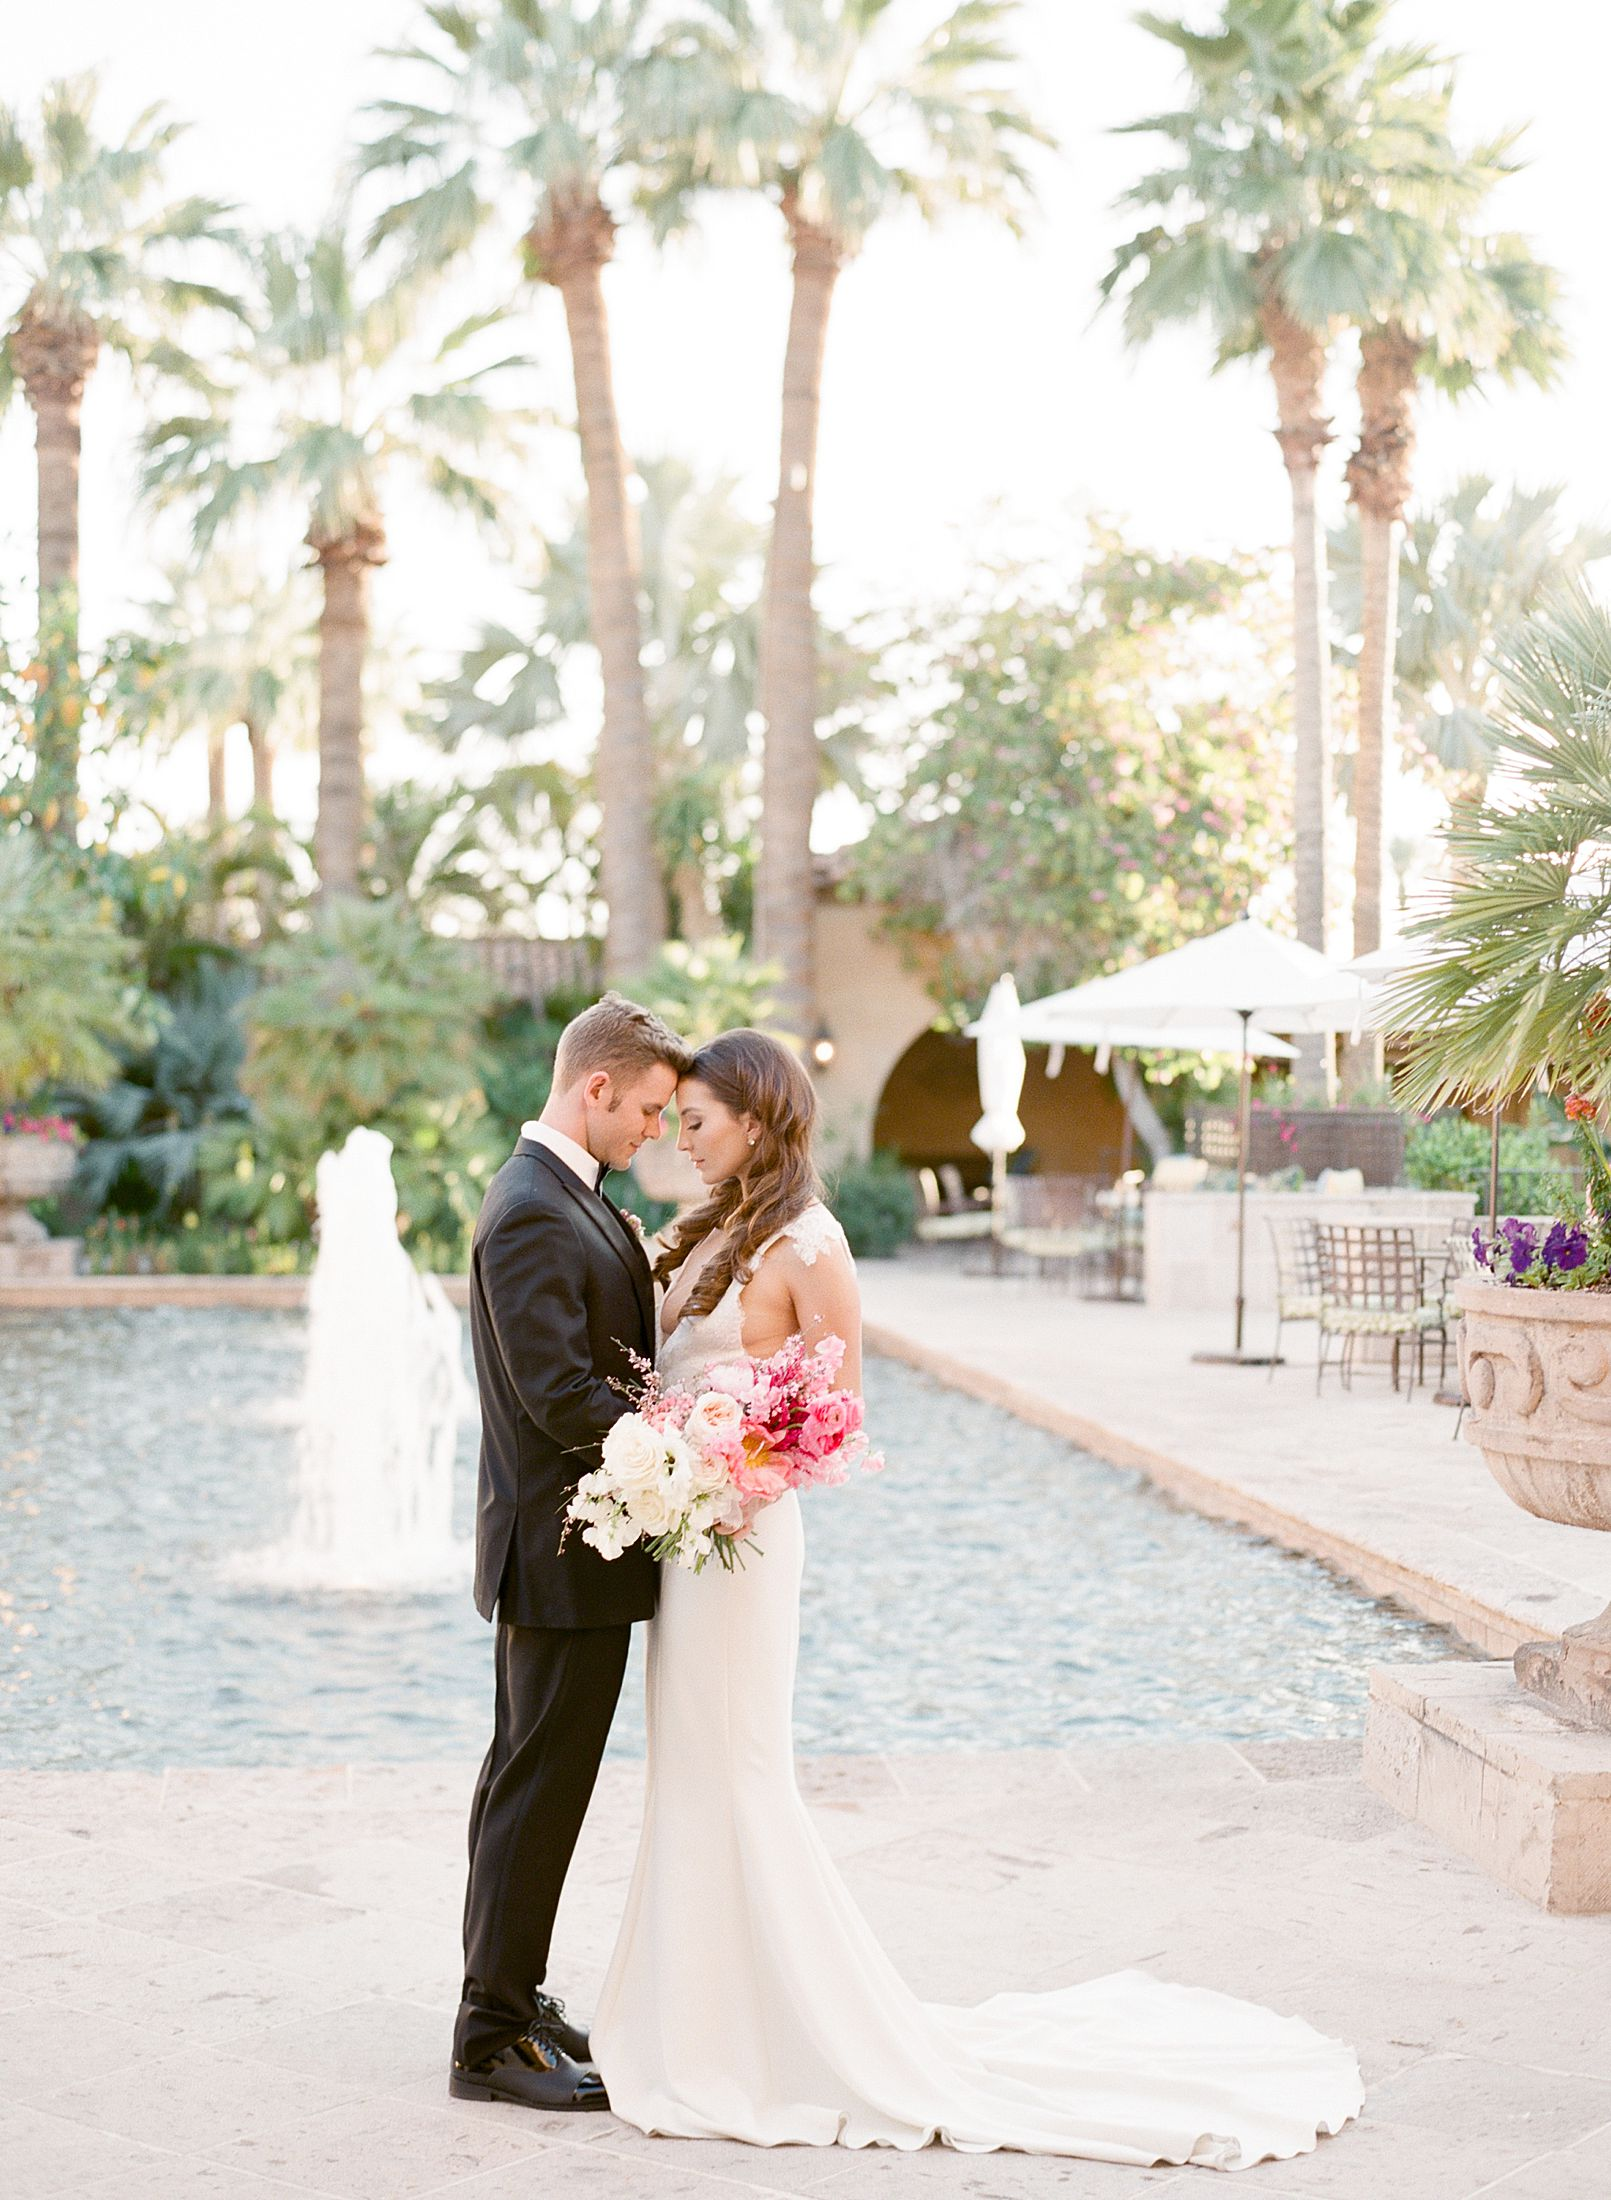 Pink Ombre Wedding Inspiration on Style Me Pretty - Royal Palms Wedding - Scottsdale Wedding - Ashley Baumgartner - Bloom and Blueprint - Wedding Puppies - Bulldog Puppies_0035.jpg